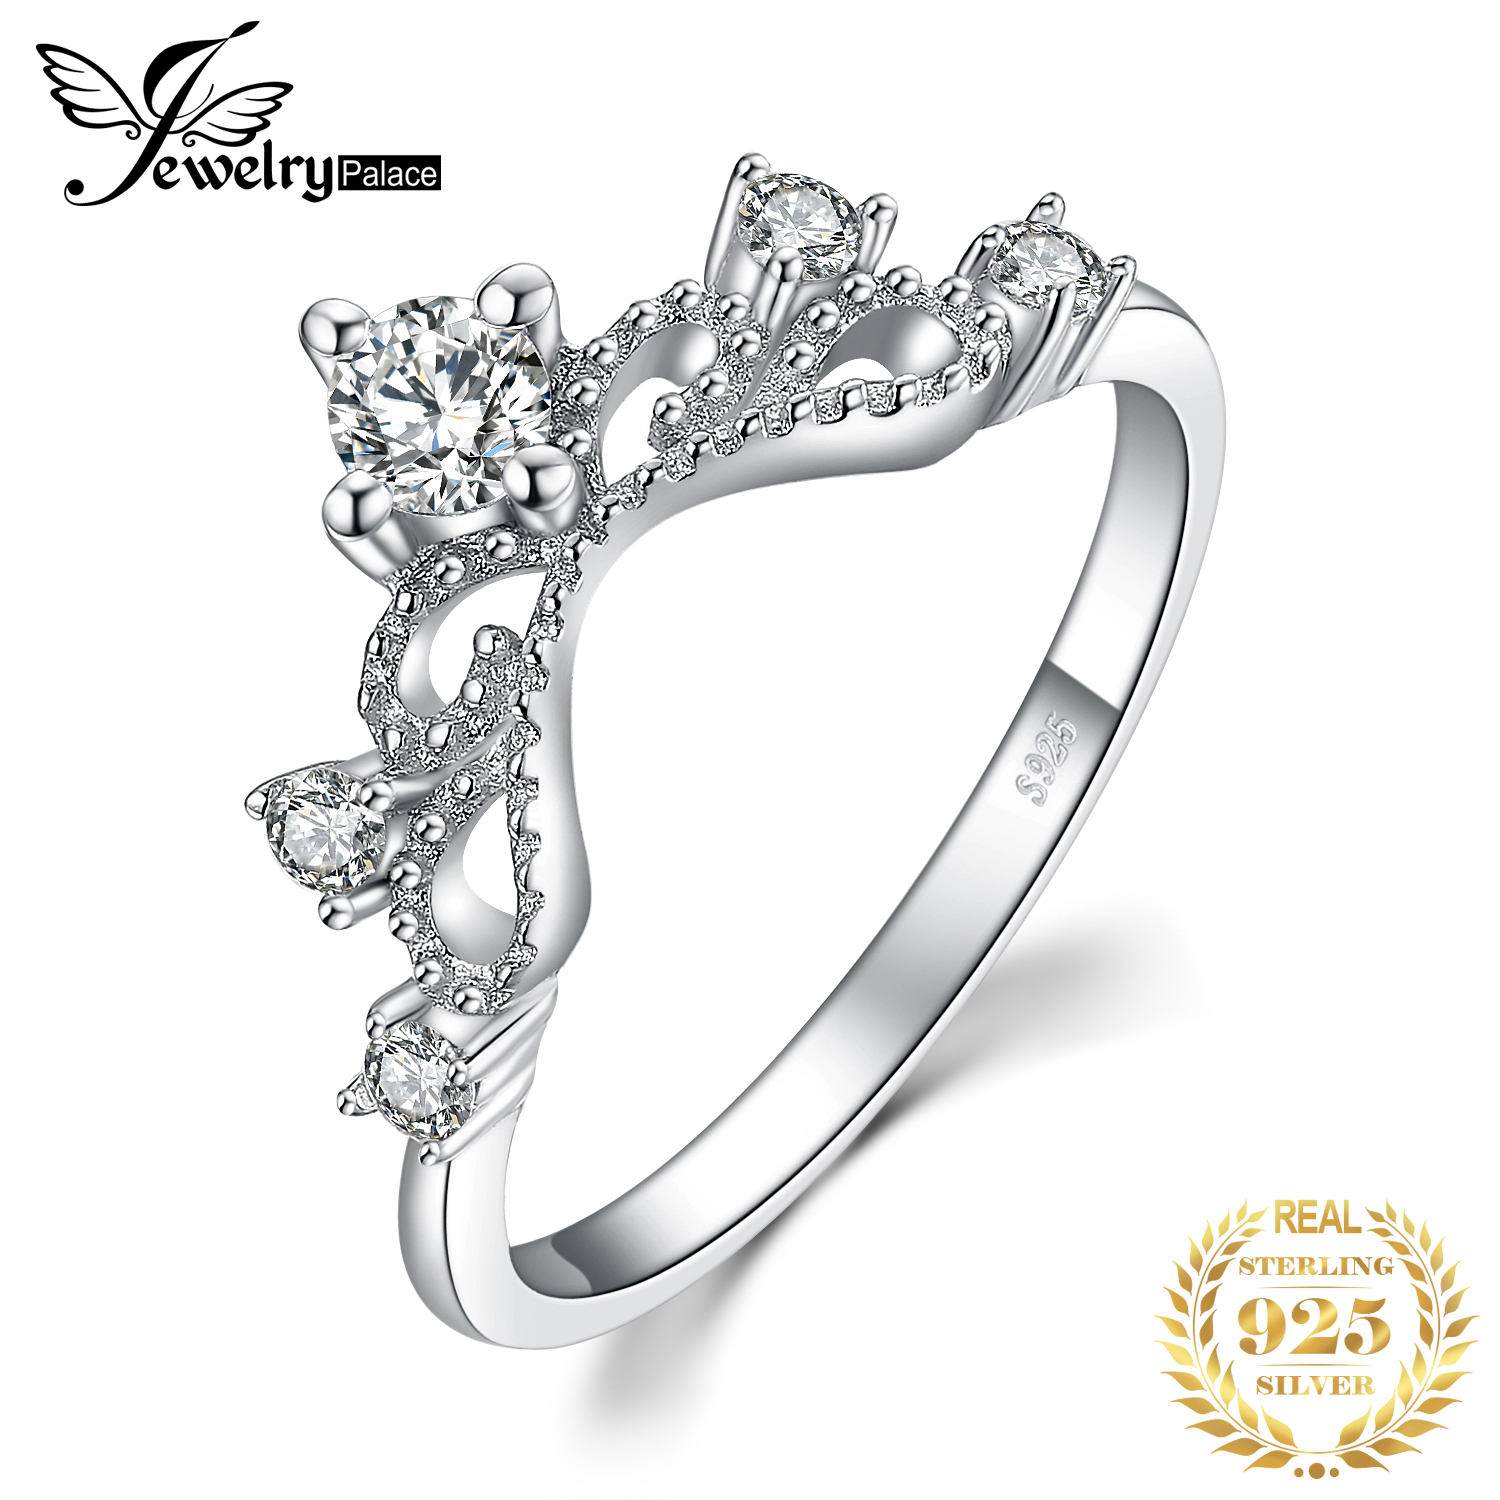 JewelryPalace Princess Crown 0.6ct Cubic Zirconia Anniversary Promise Ring Wedding Engagement Ring 925 Sterling Silver Ring